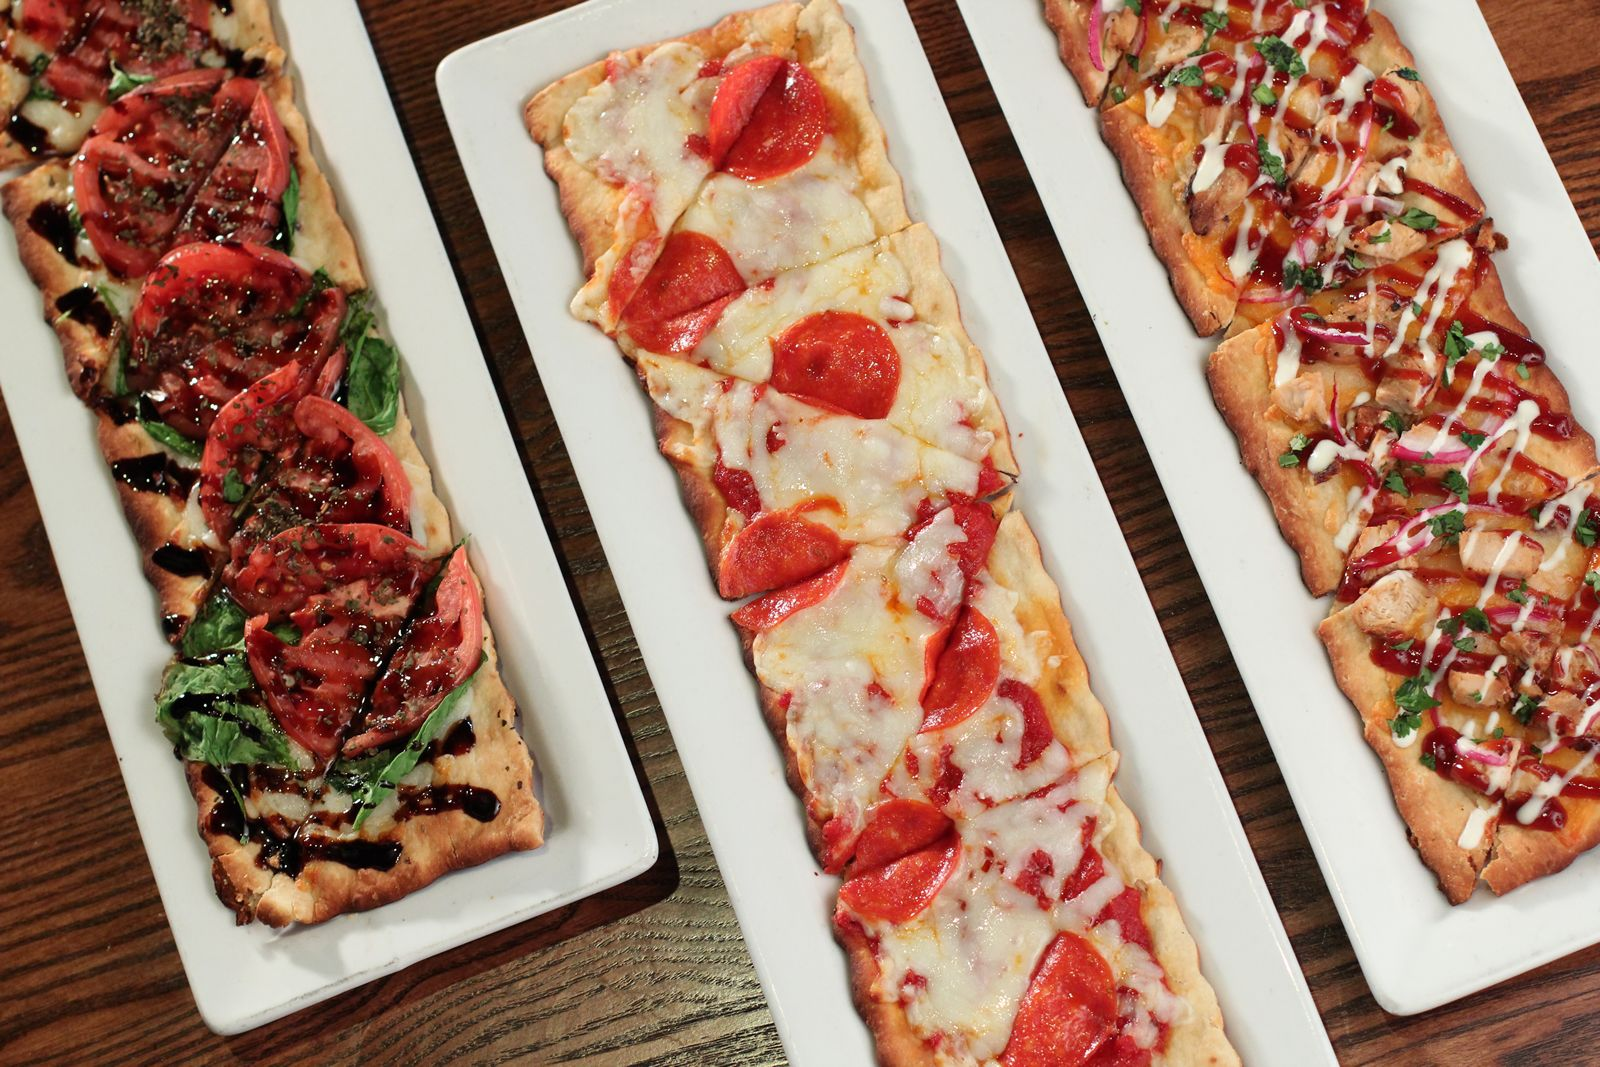 Hickory Tavern Makes 'Your Craveable Experience' Even More Craveable and More of an Experience with New Fall Menu Additions